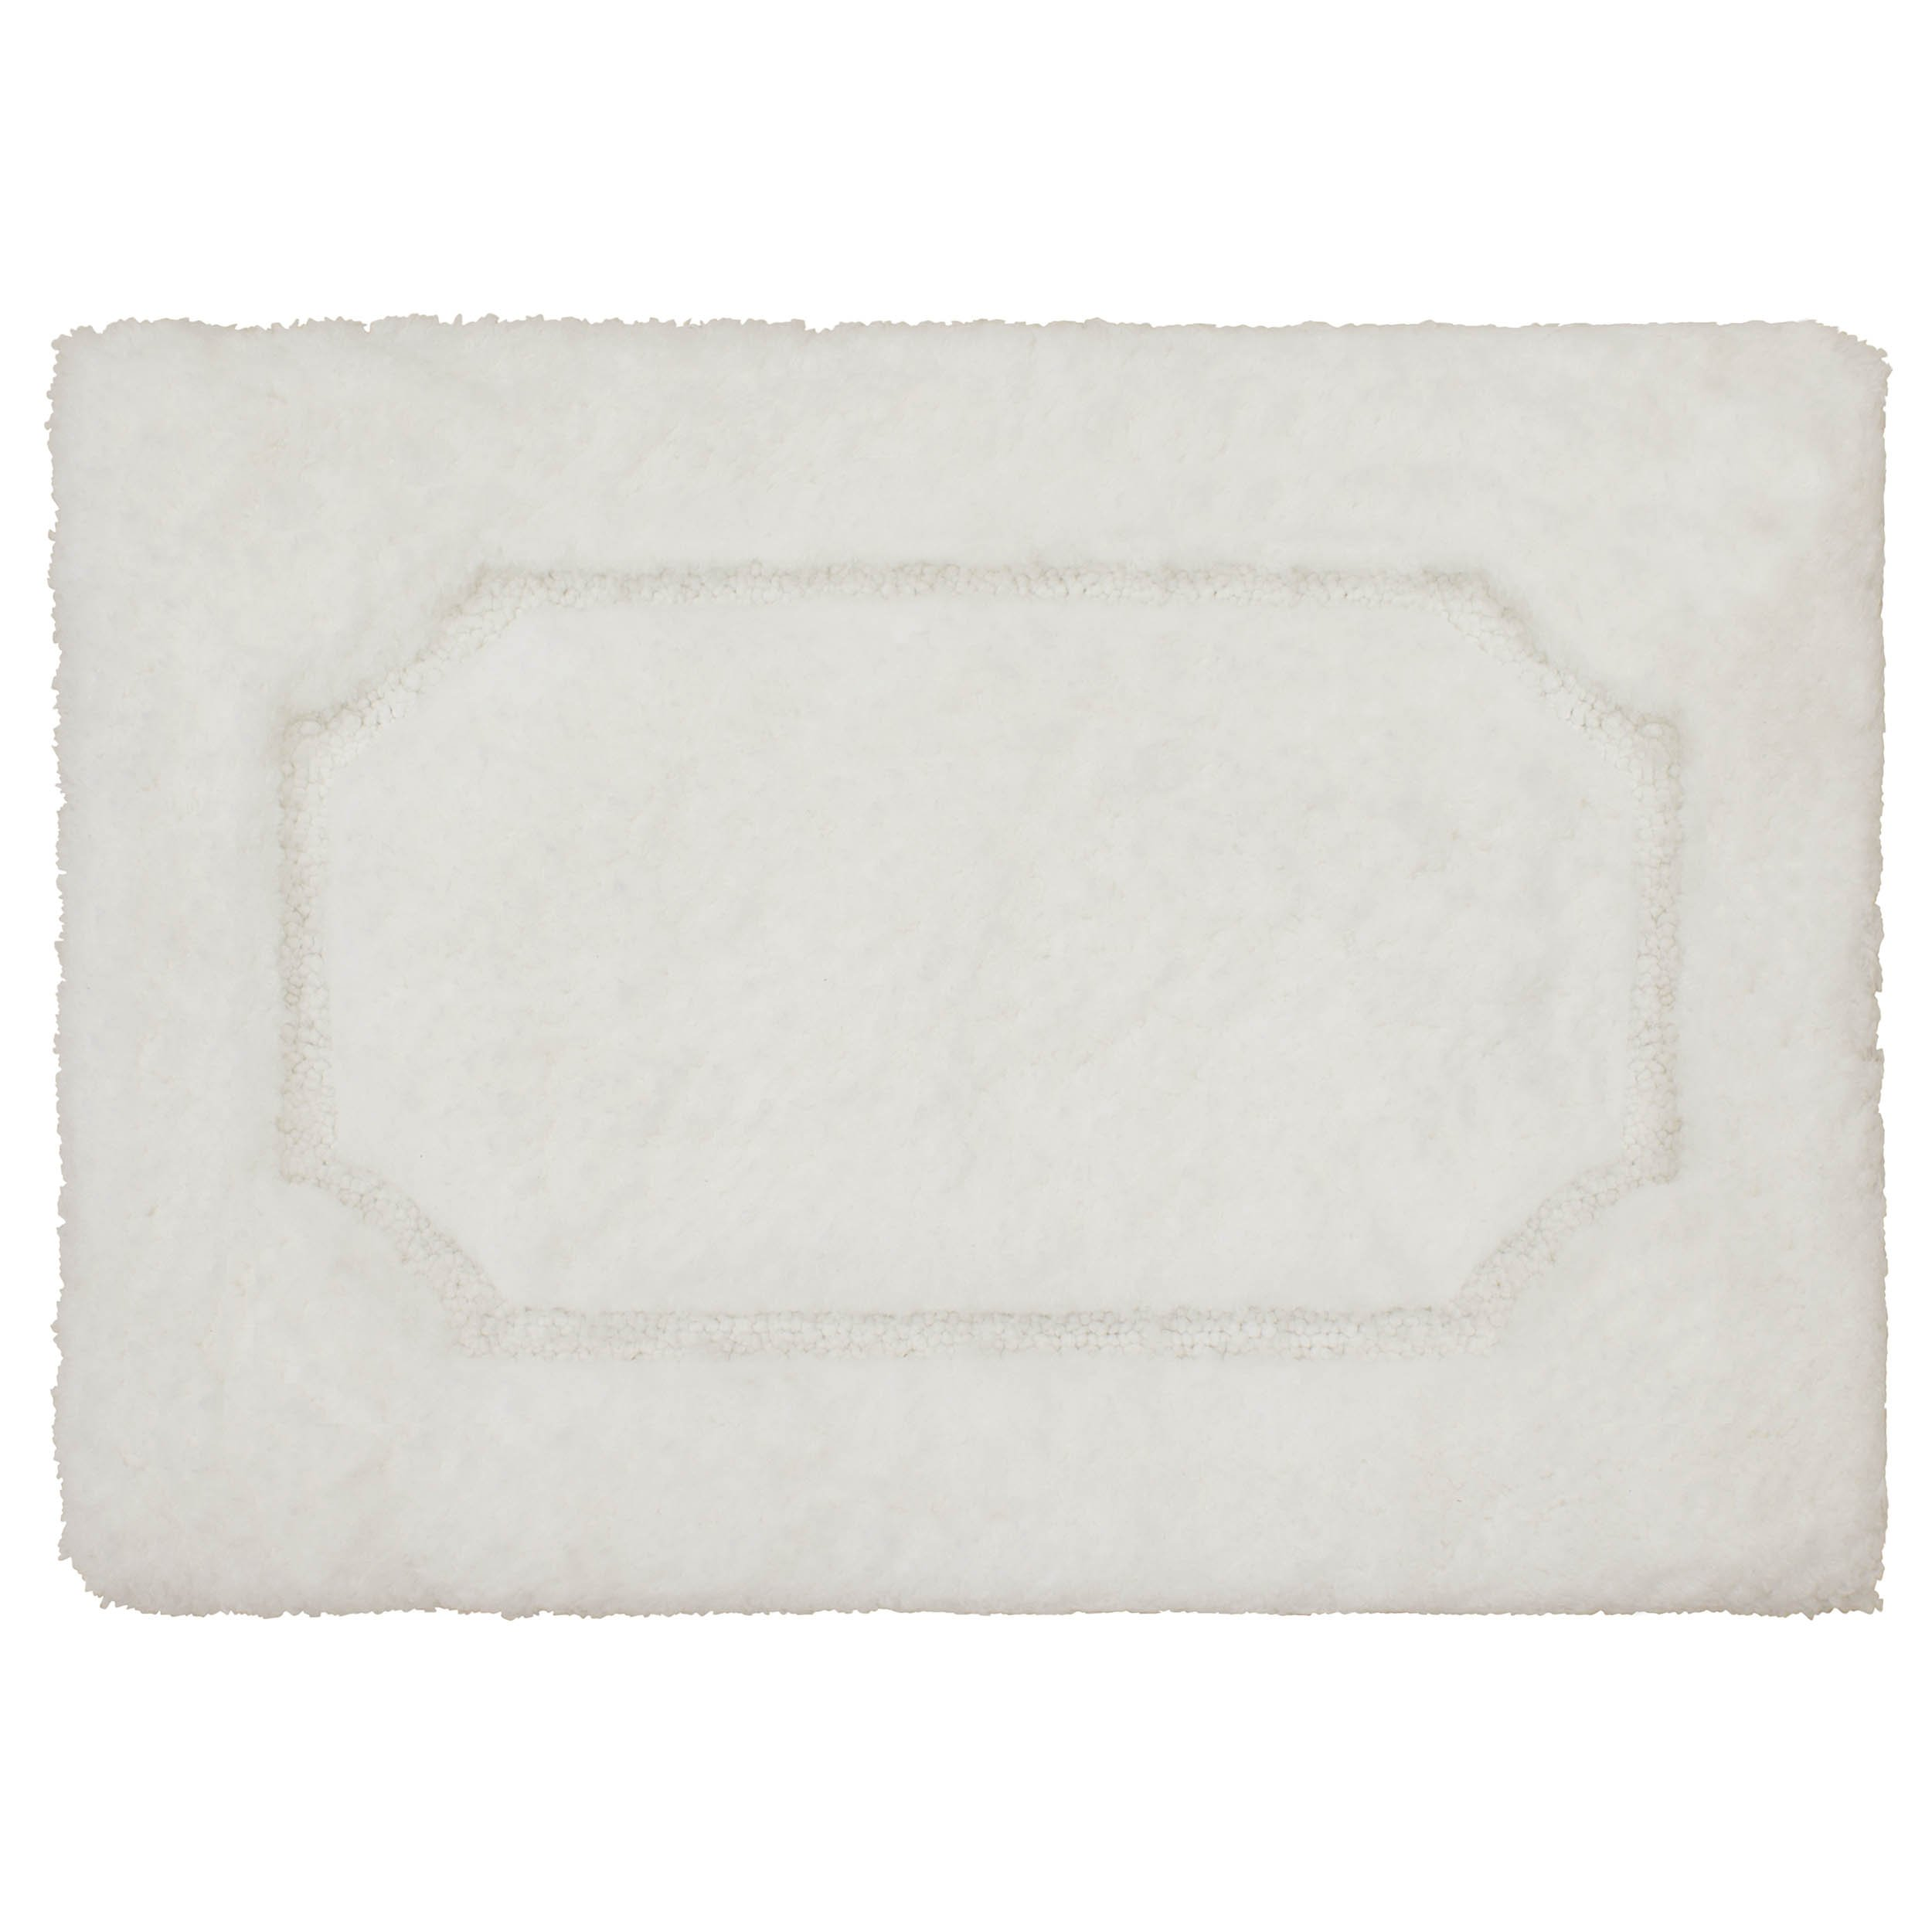 Vista Living Blossom Premium Super Plush 20'' x 32'' Bath Rug, White